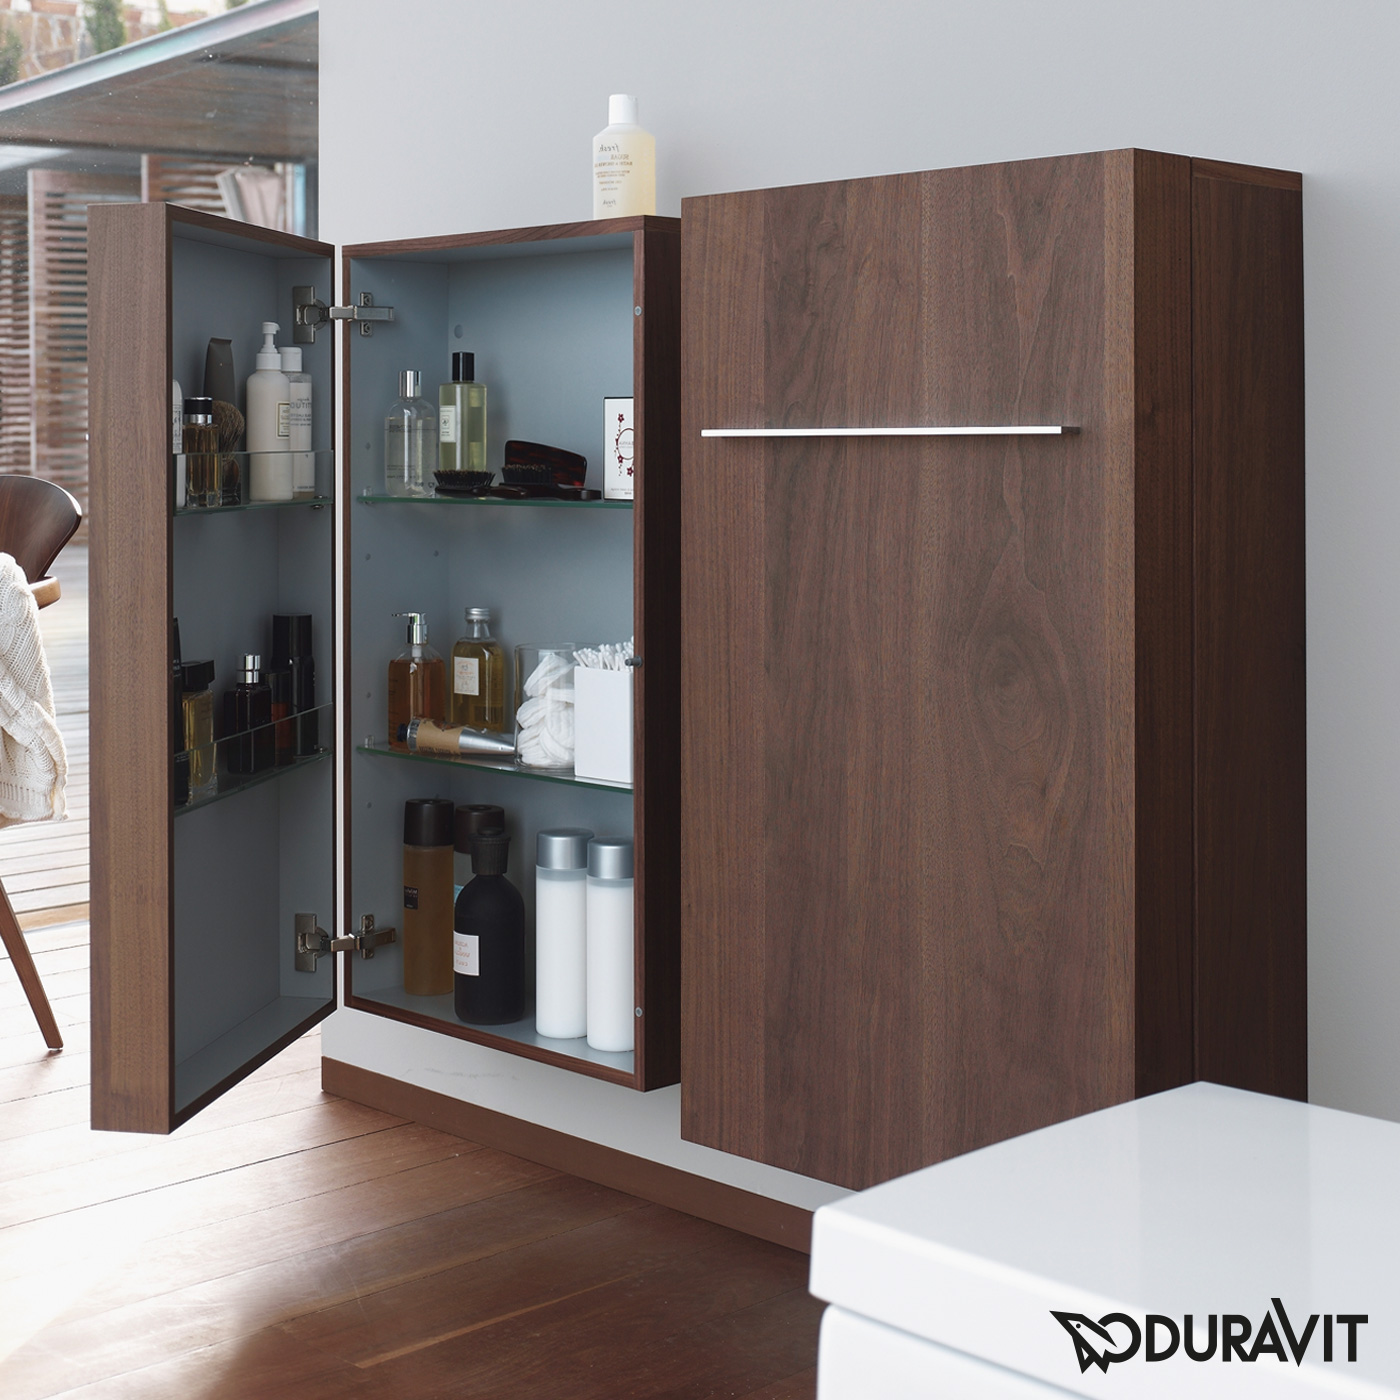 duravit fogo halbhochschrank amerikanischer nu baum echtholzfurnier anschlag links. Black Bedroom Furniture Sets. Home Design Ideas